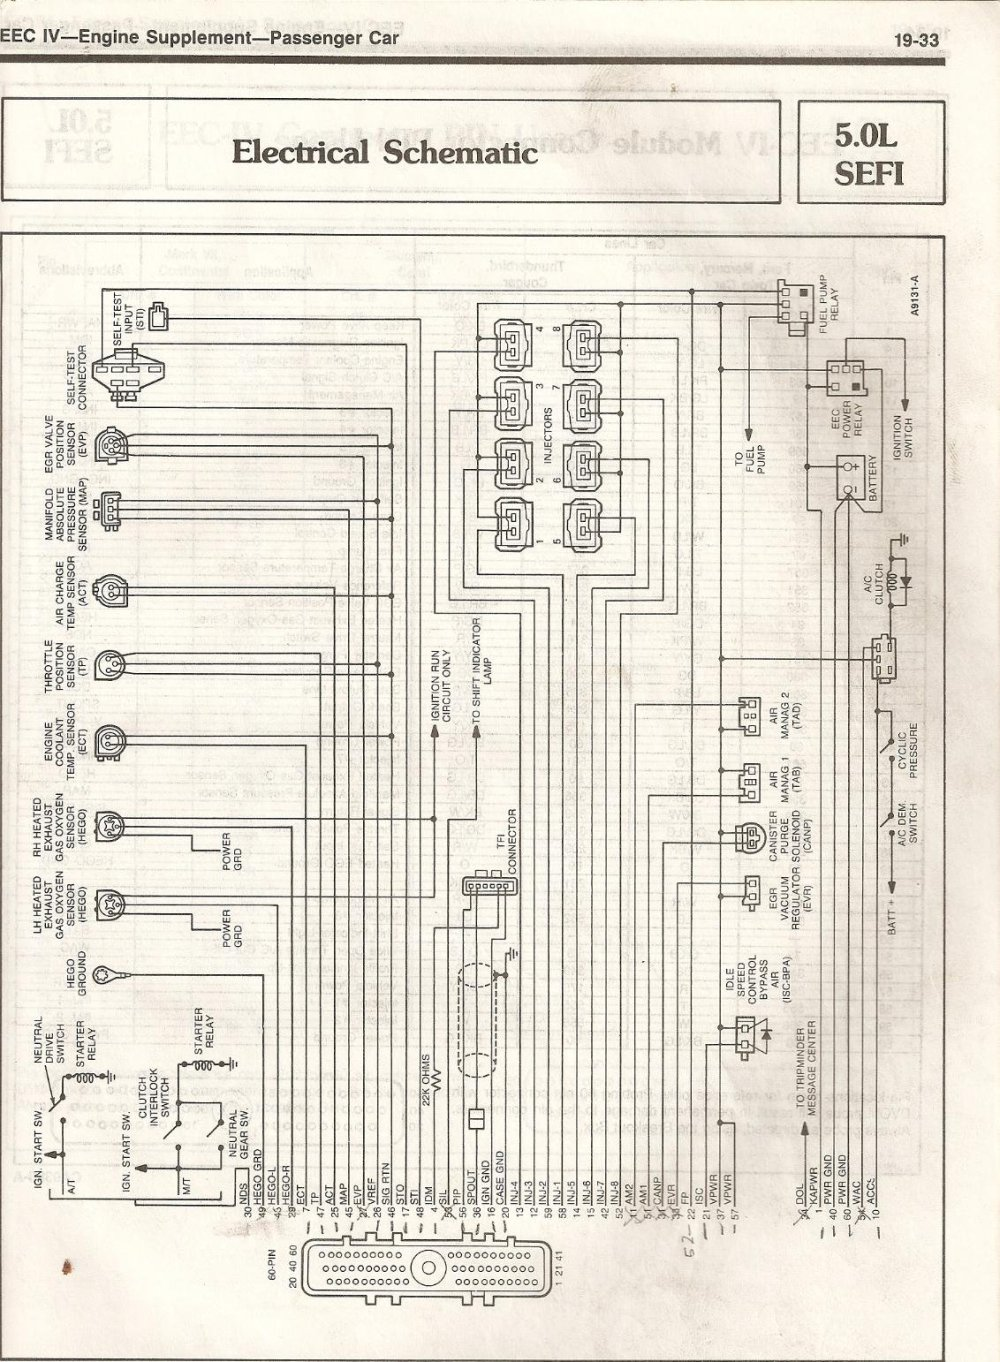 medium resolution of 495529d1454445979 302 5 0 efi swap computer pins 1986 5 0 eec pinout eec